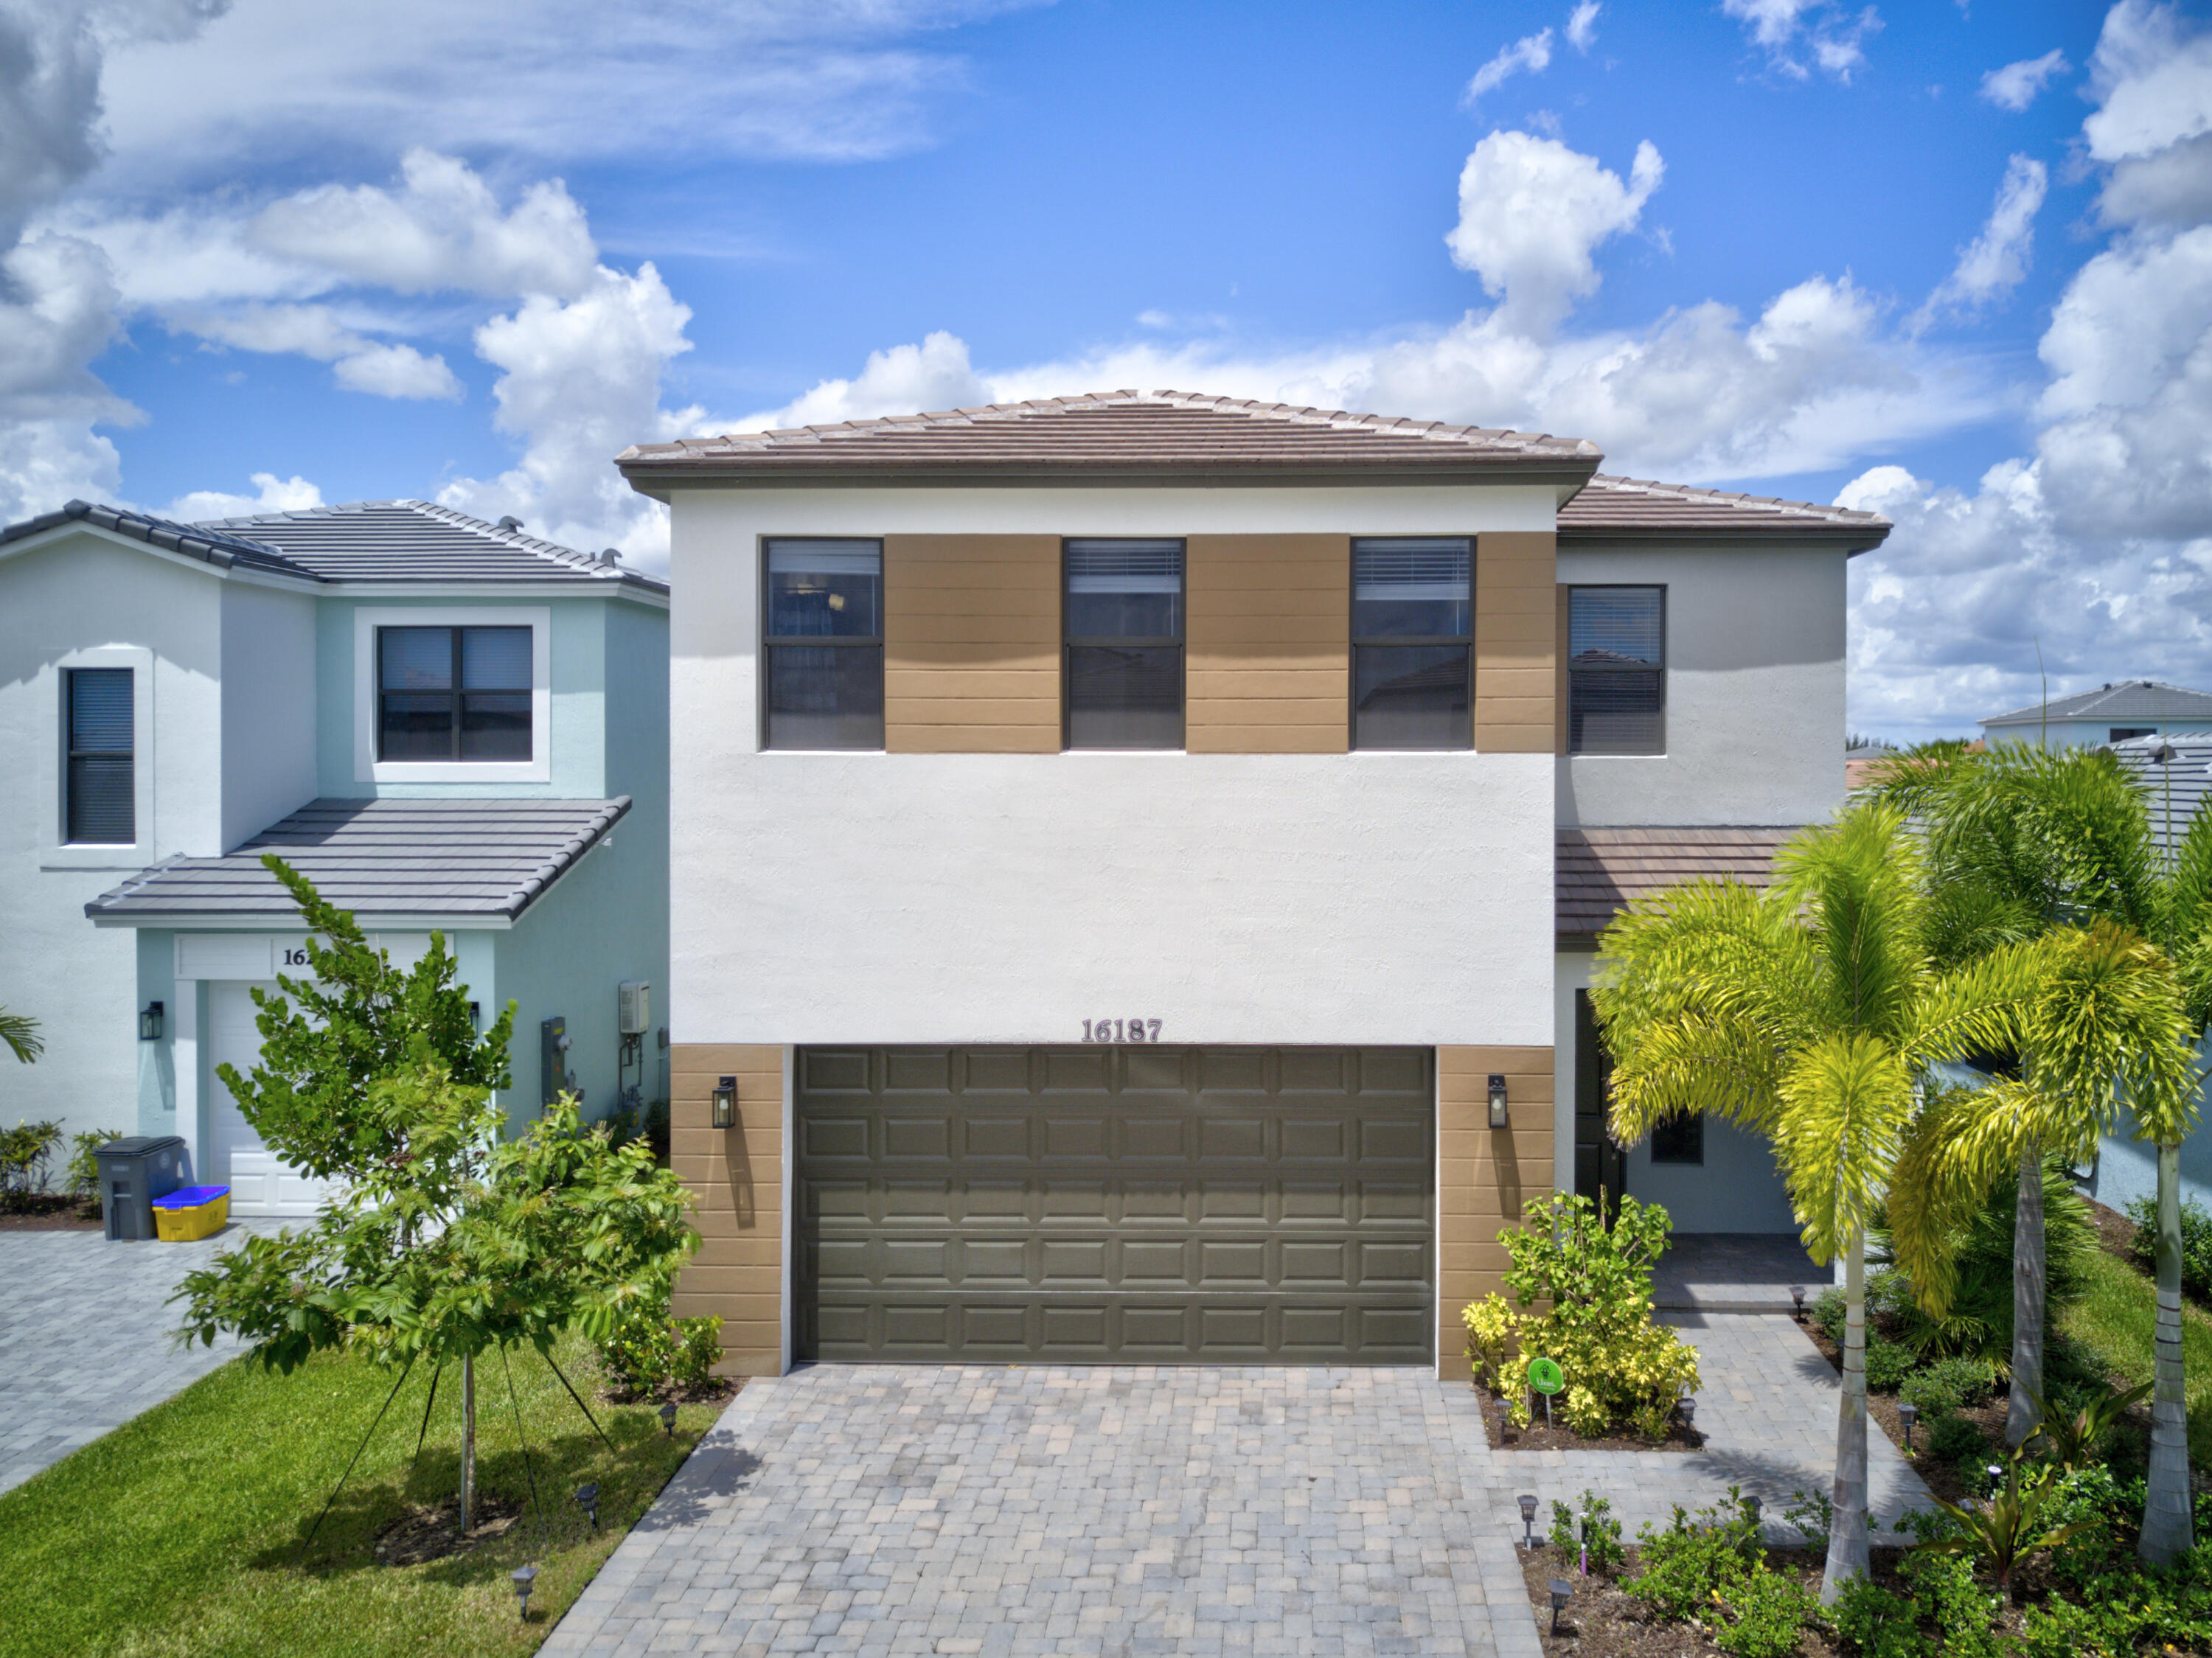 Home for sale in Sky Cove Westlake Florida